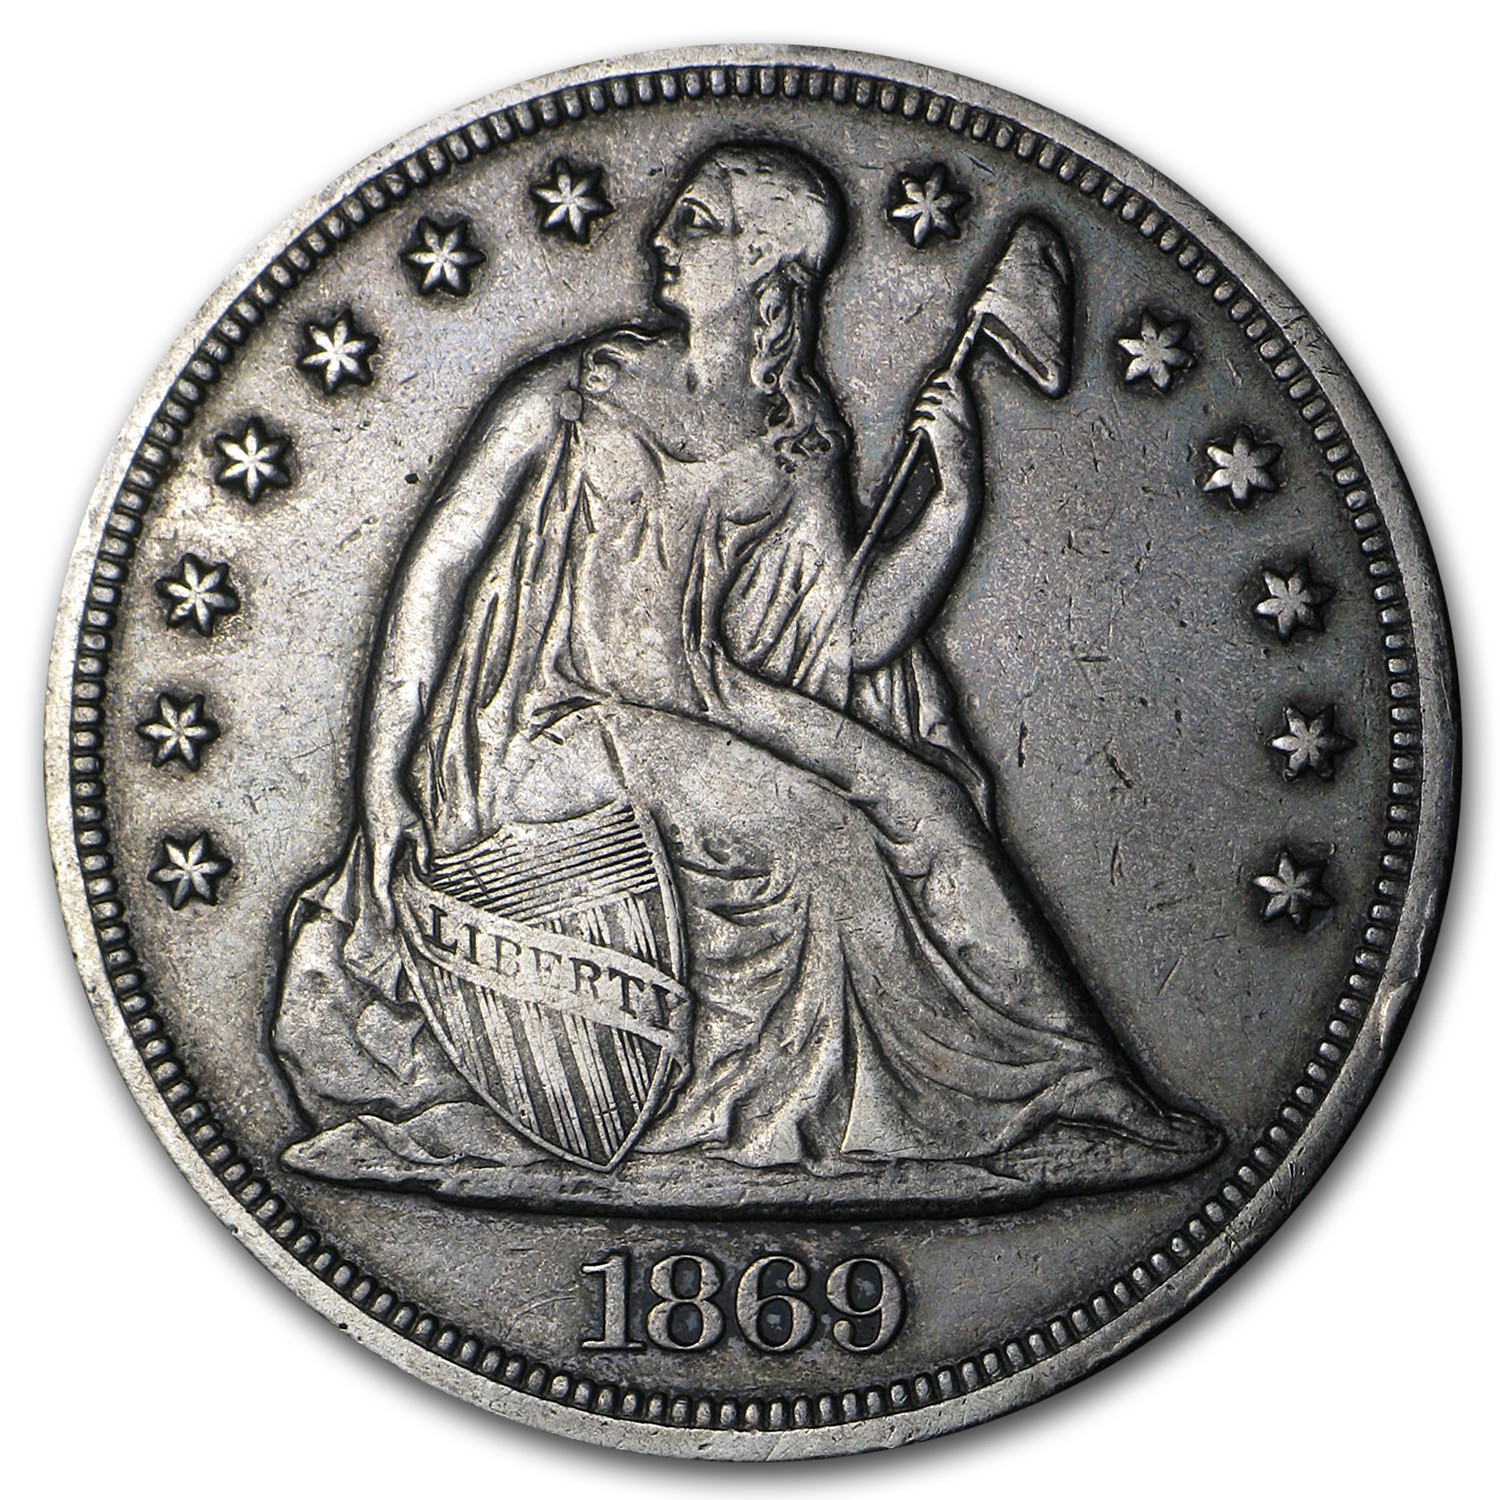 1869 Liberty Seated Dollar - Very Fine